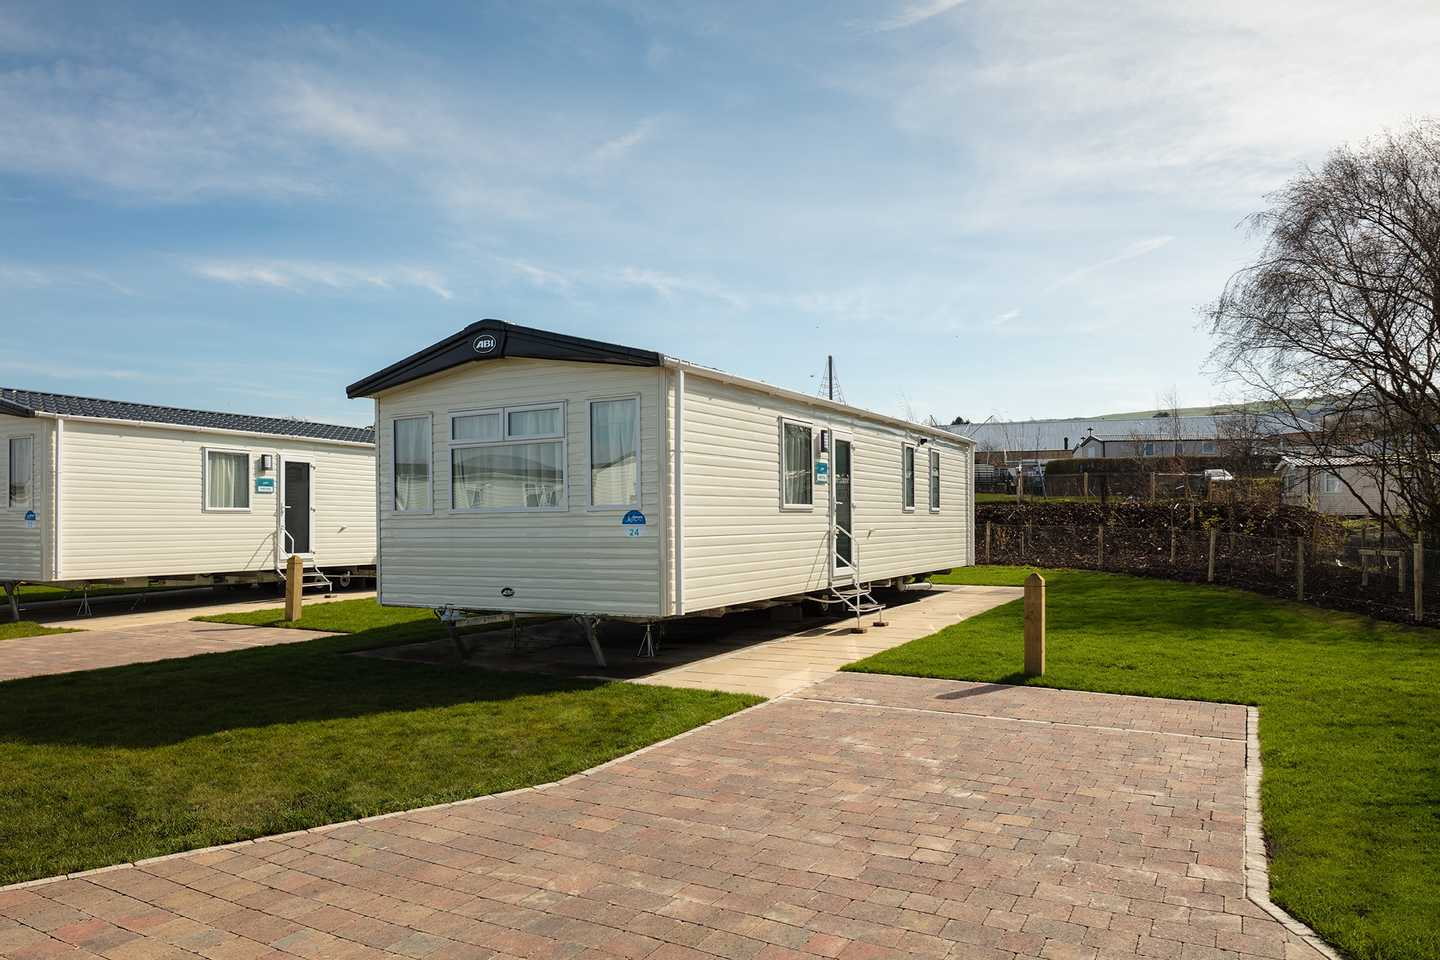 Prestige caravan with parking space beside